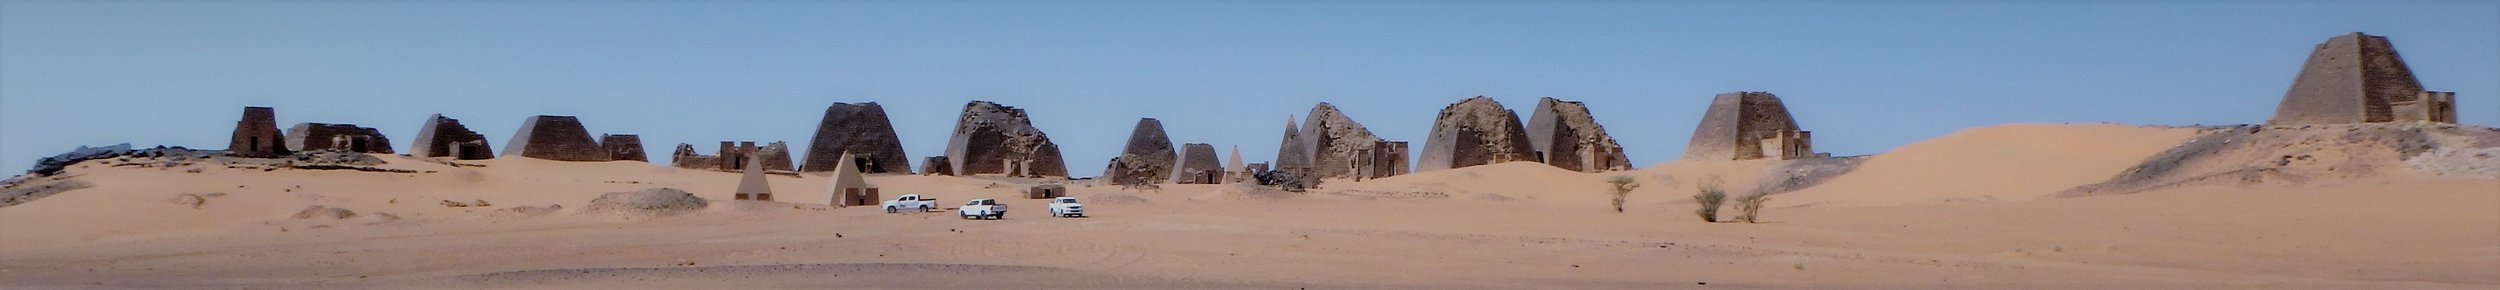 Trippy Pyramids of Meroe.